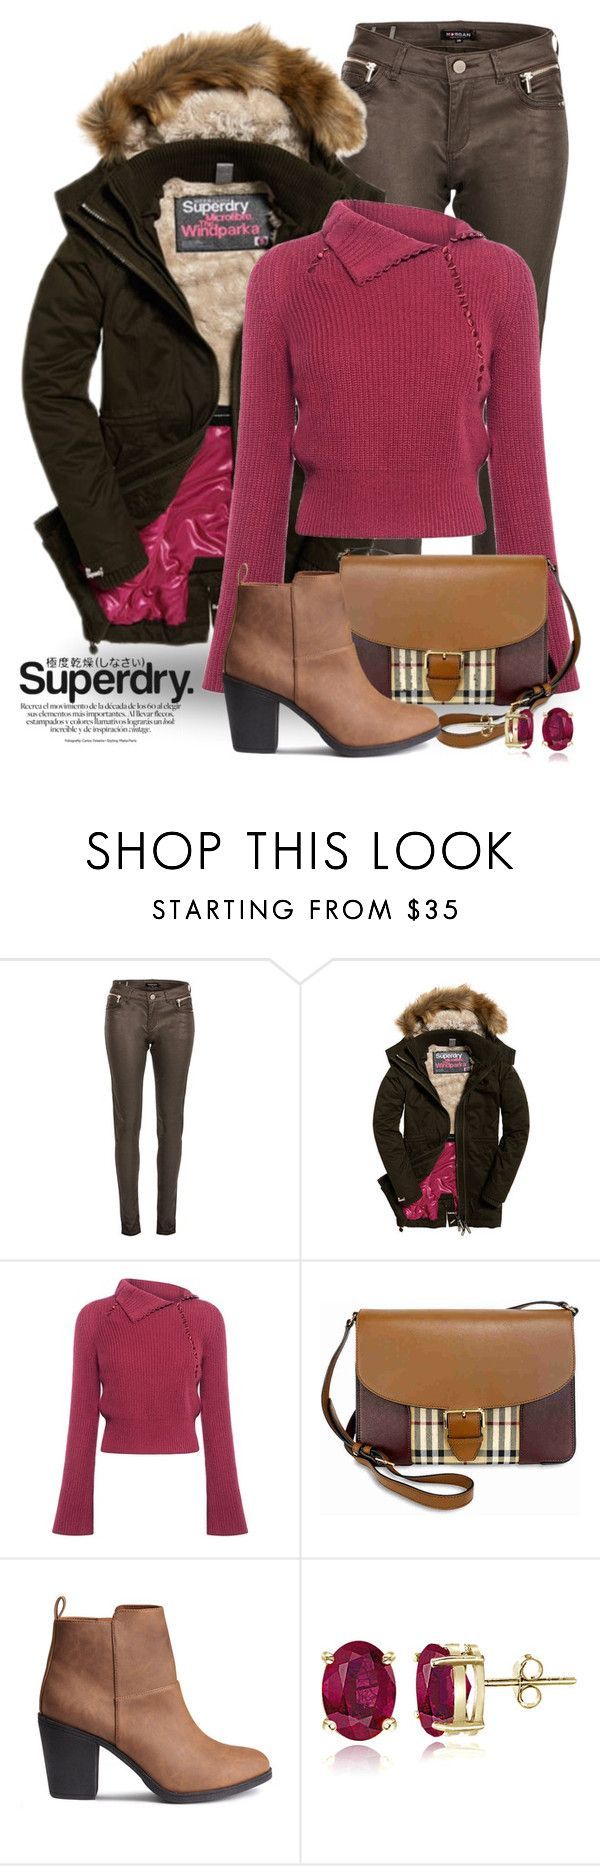 """The Cover Up – Jackets by Superdry 2519"" by boxthoughts ❤ liked on Polyvore featuring Morgan, 10 Crosby Derek Lam, Burberry, Superdry, Glitzy Rocks and MySuperdry"